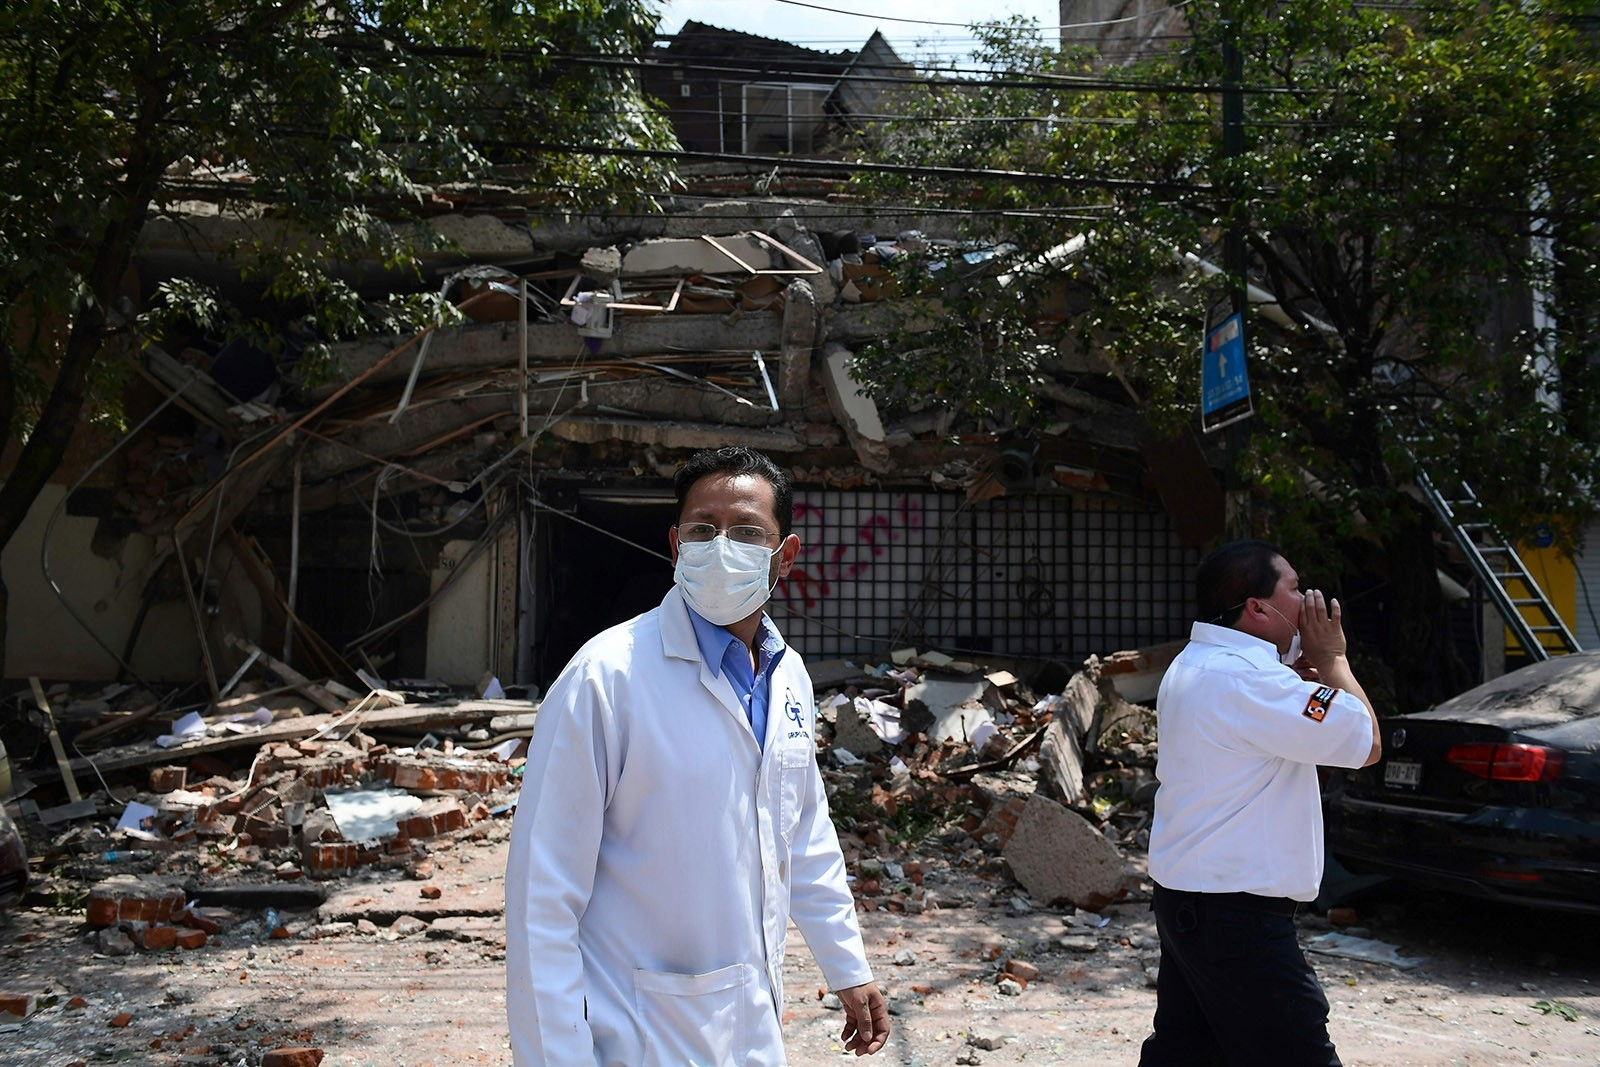 Medical staff walk by a building which collapsed during a quake in Mexico City on September 19, 2017. (AFP Photo)